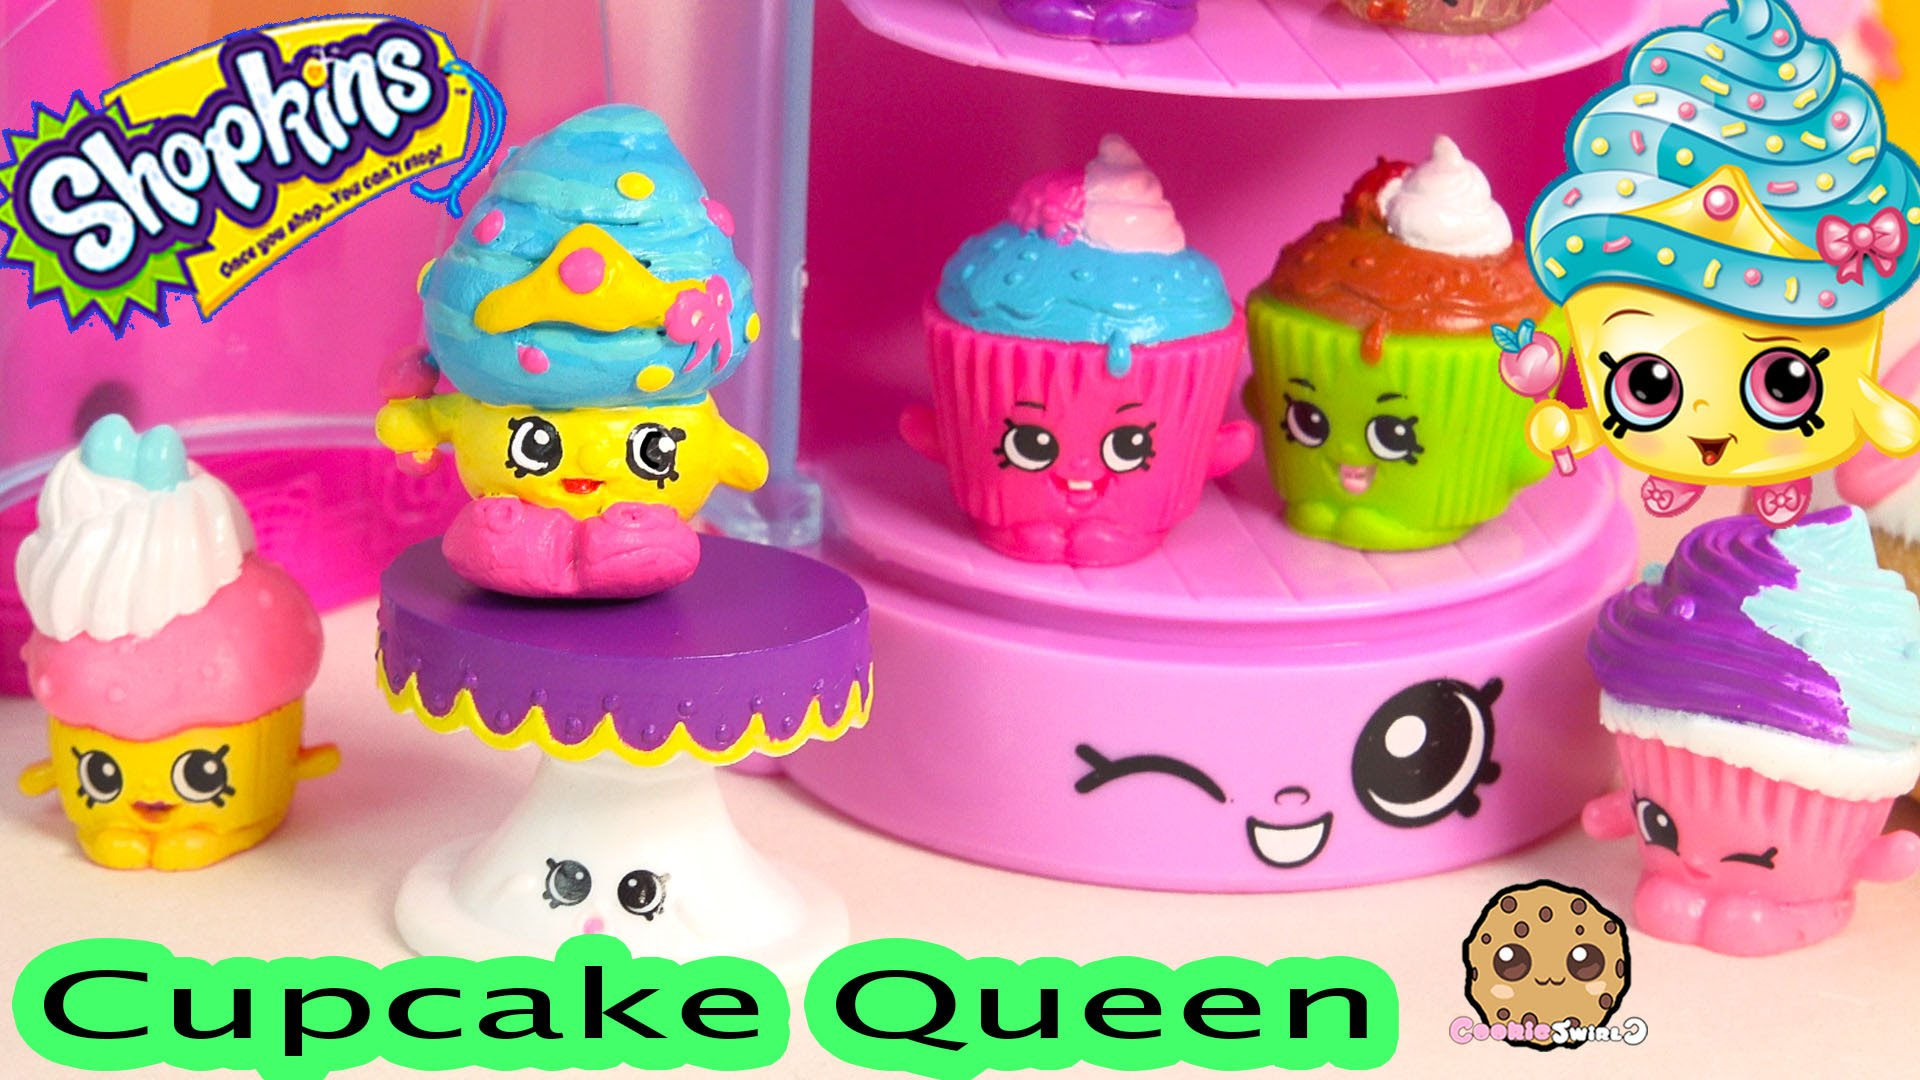 Shopkins clipart cupcake queen png library Shopkins clipart cupcake queen - ClipartFest png library